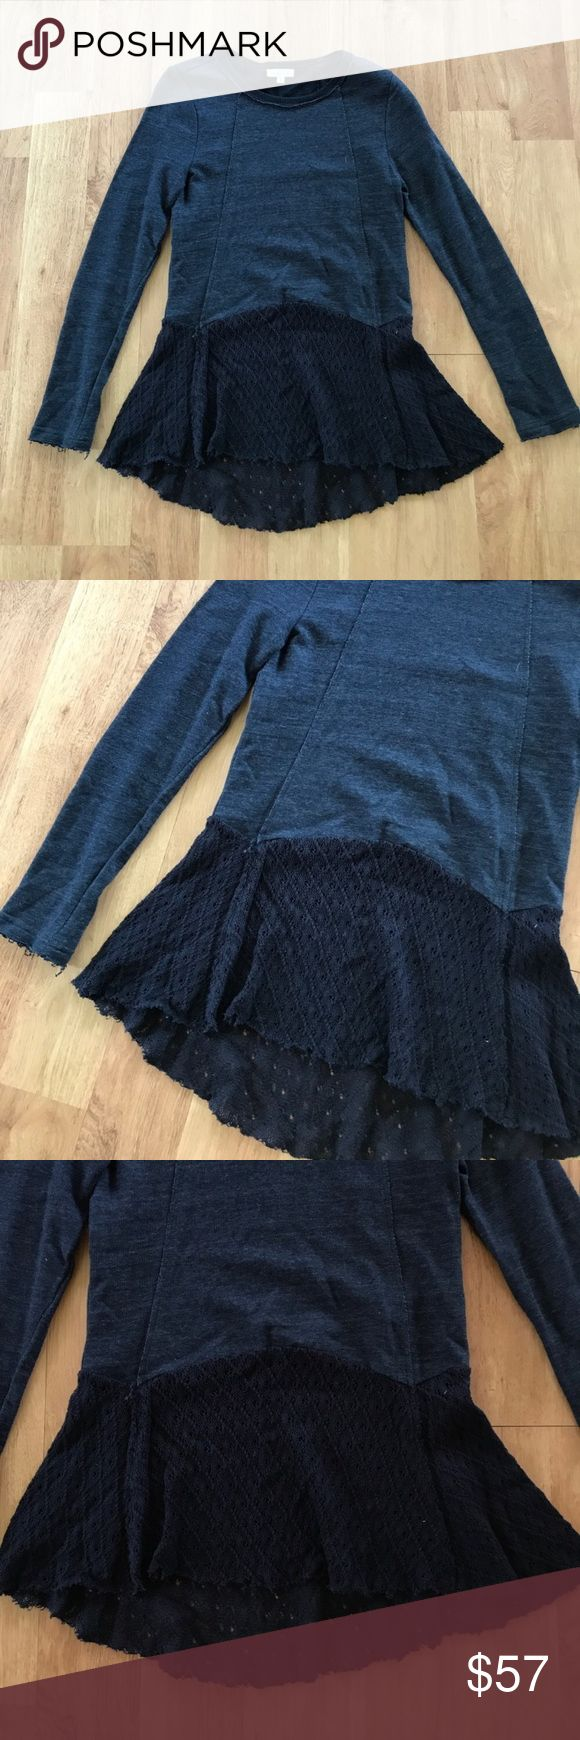 Anthropologie Navy Long Sleeve Top Size Small ⚜️I love receiving offers through the offer button!⚜️ Good condition, as seen in pictures! Fast same or next day shipping!📨 Open to offers but I don't negotiate in the comments so please use the offer button😊 Anthropologie Tops